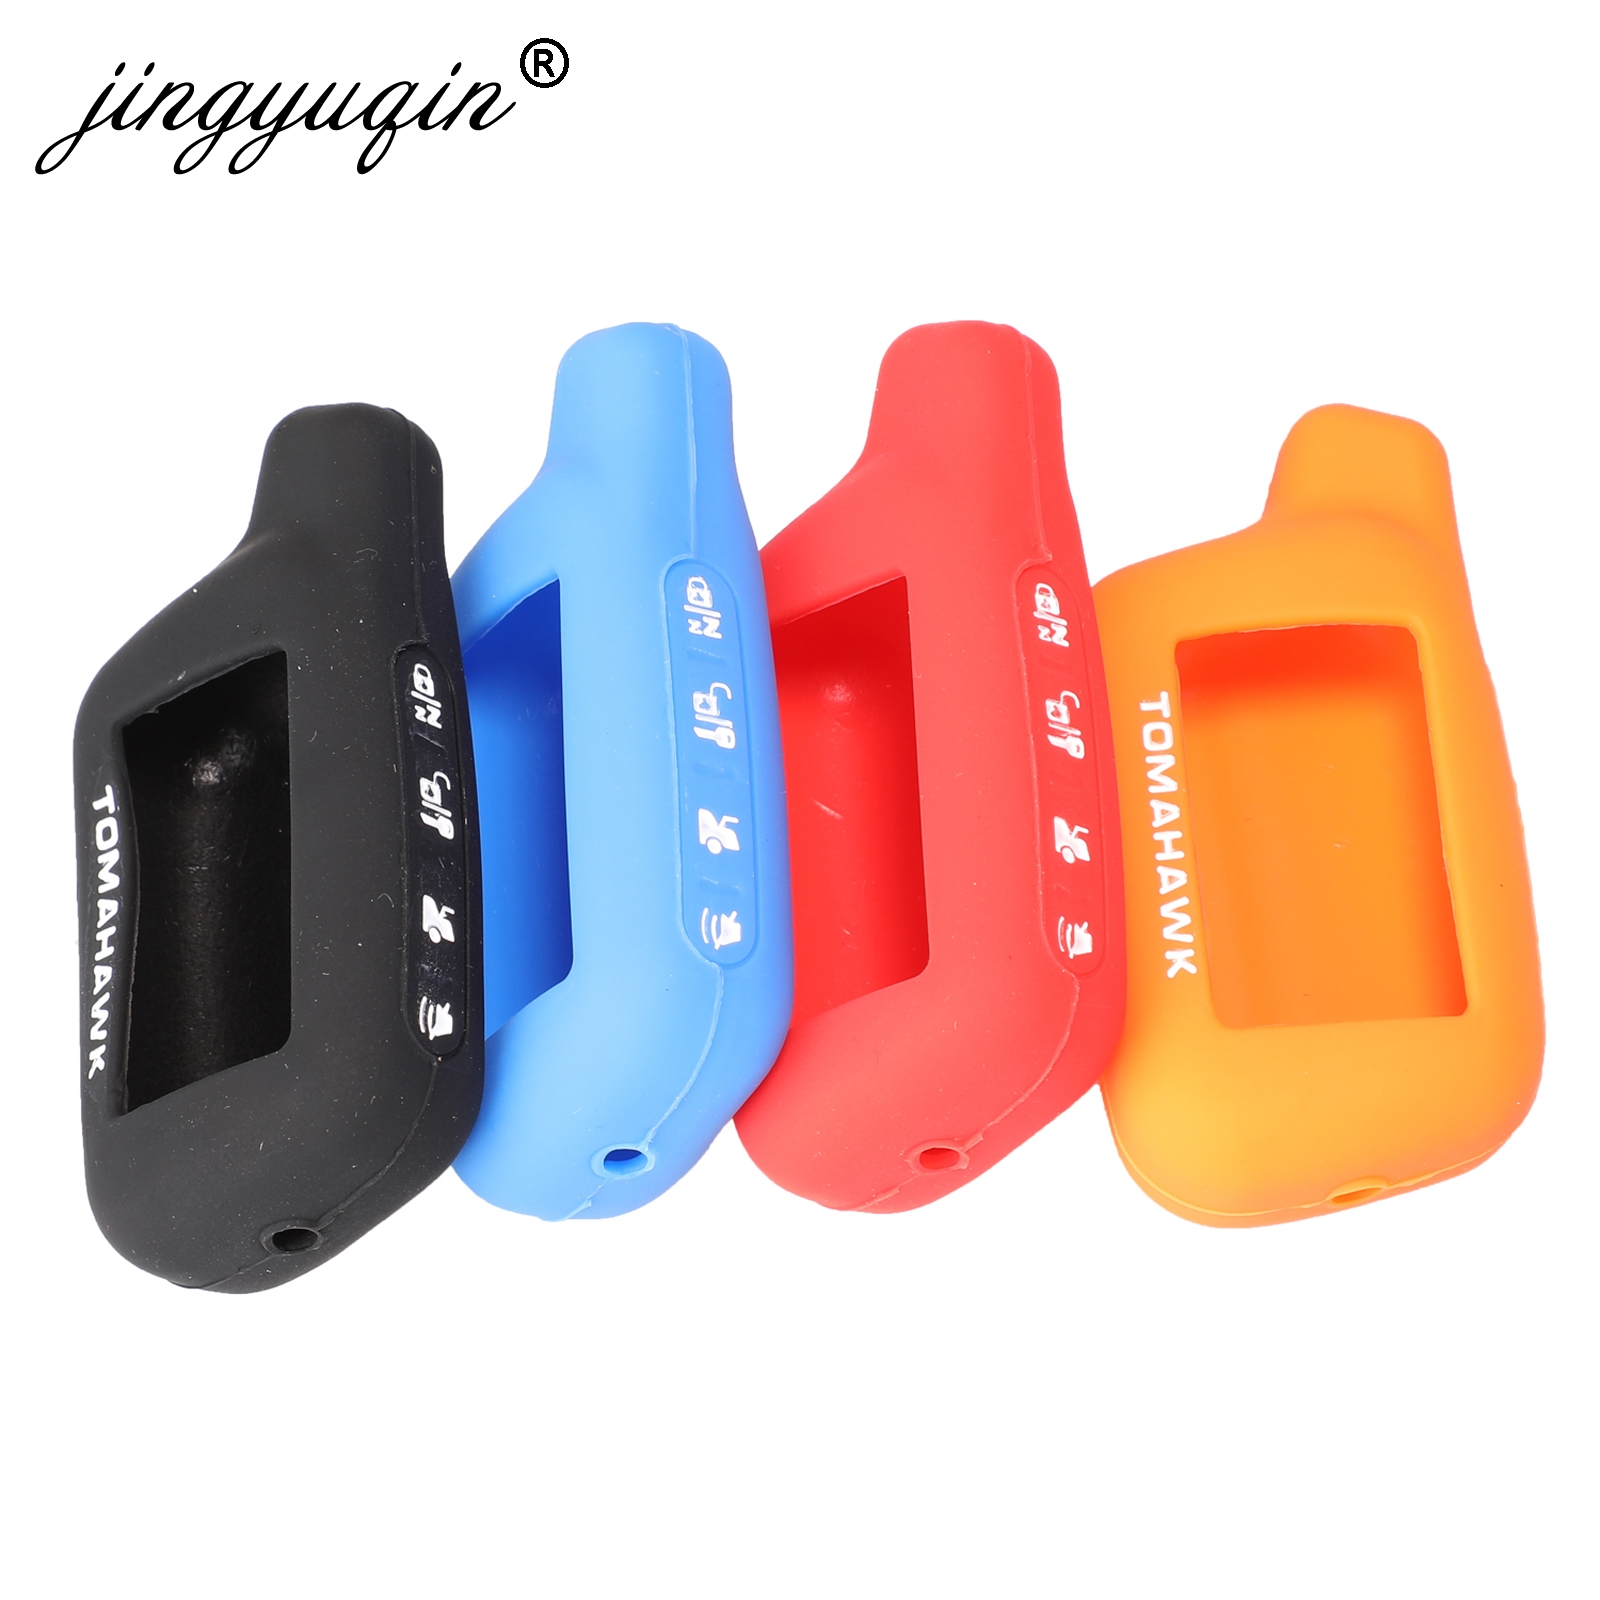 Jingyuqin 2-Way Car Alarm System LCD Rubber Cover For Tomahawk X3 X5 Remote Control Keychain Silicone Car Key Shell Case